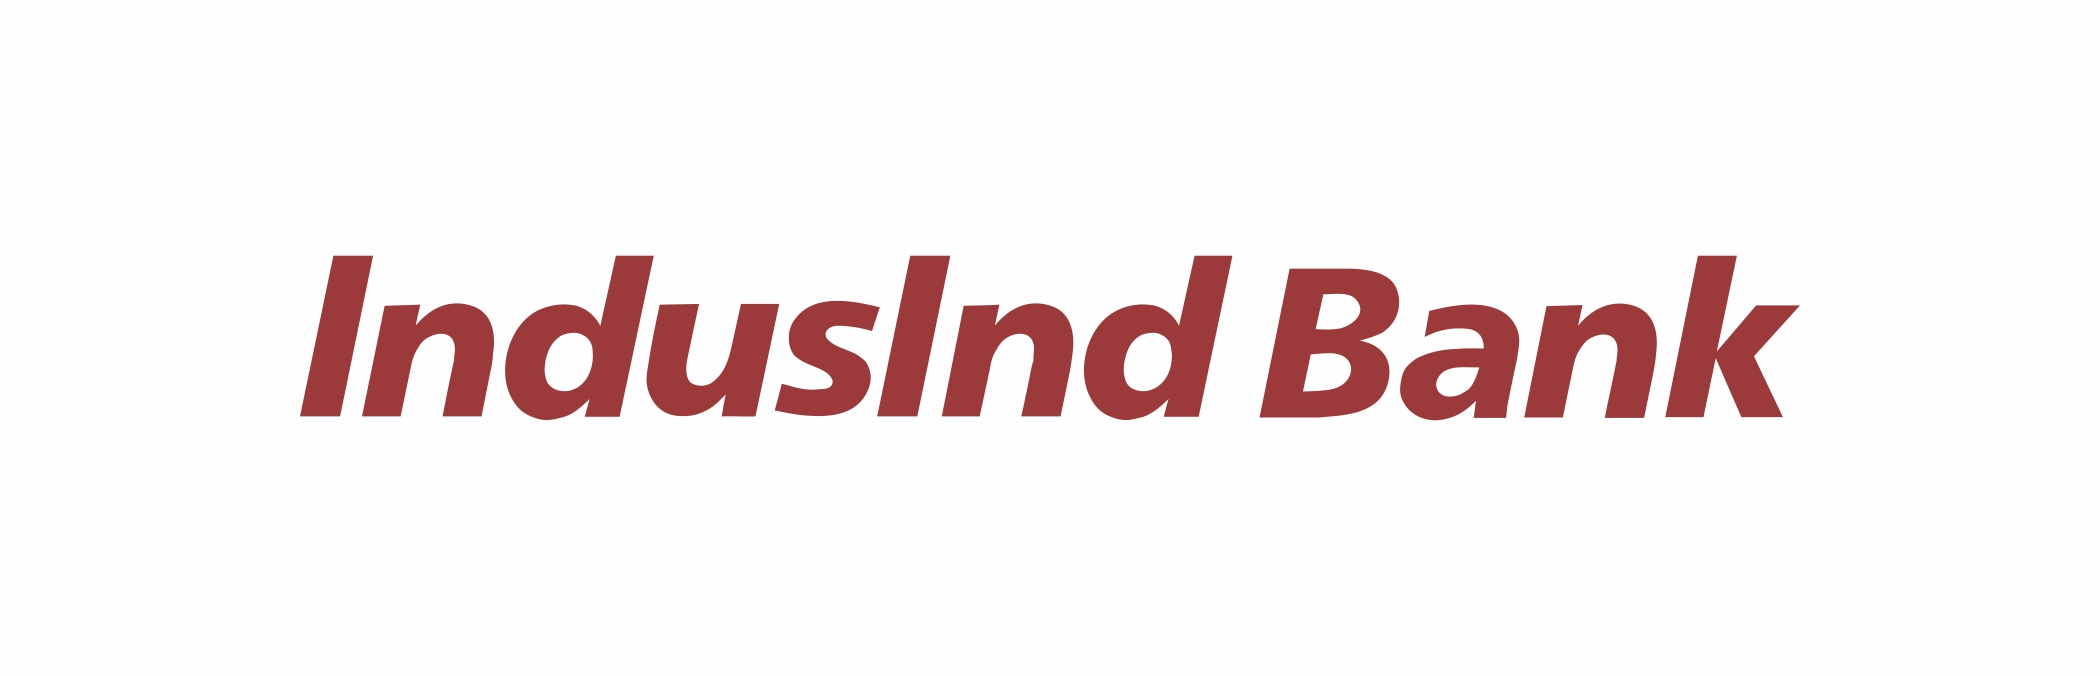 IndusInd Bank - Mall Road Branch, Amritsar